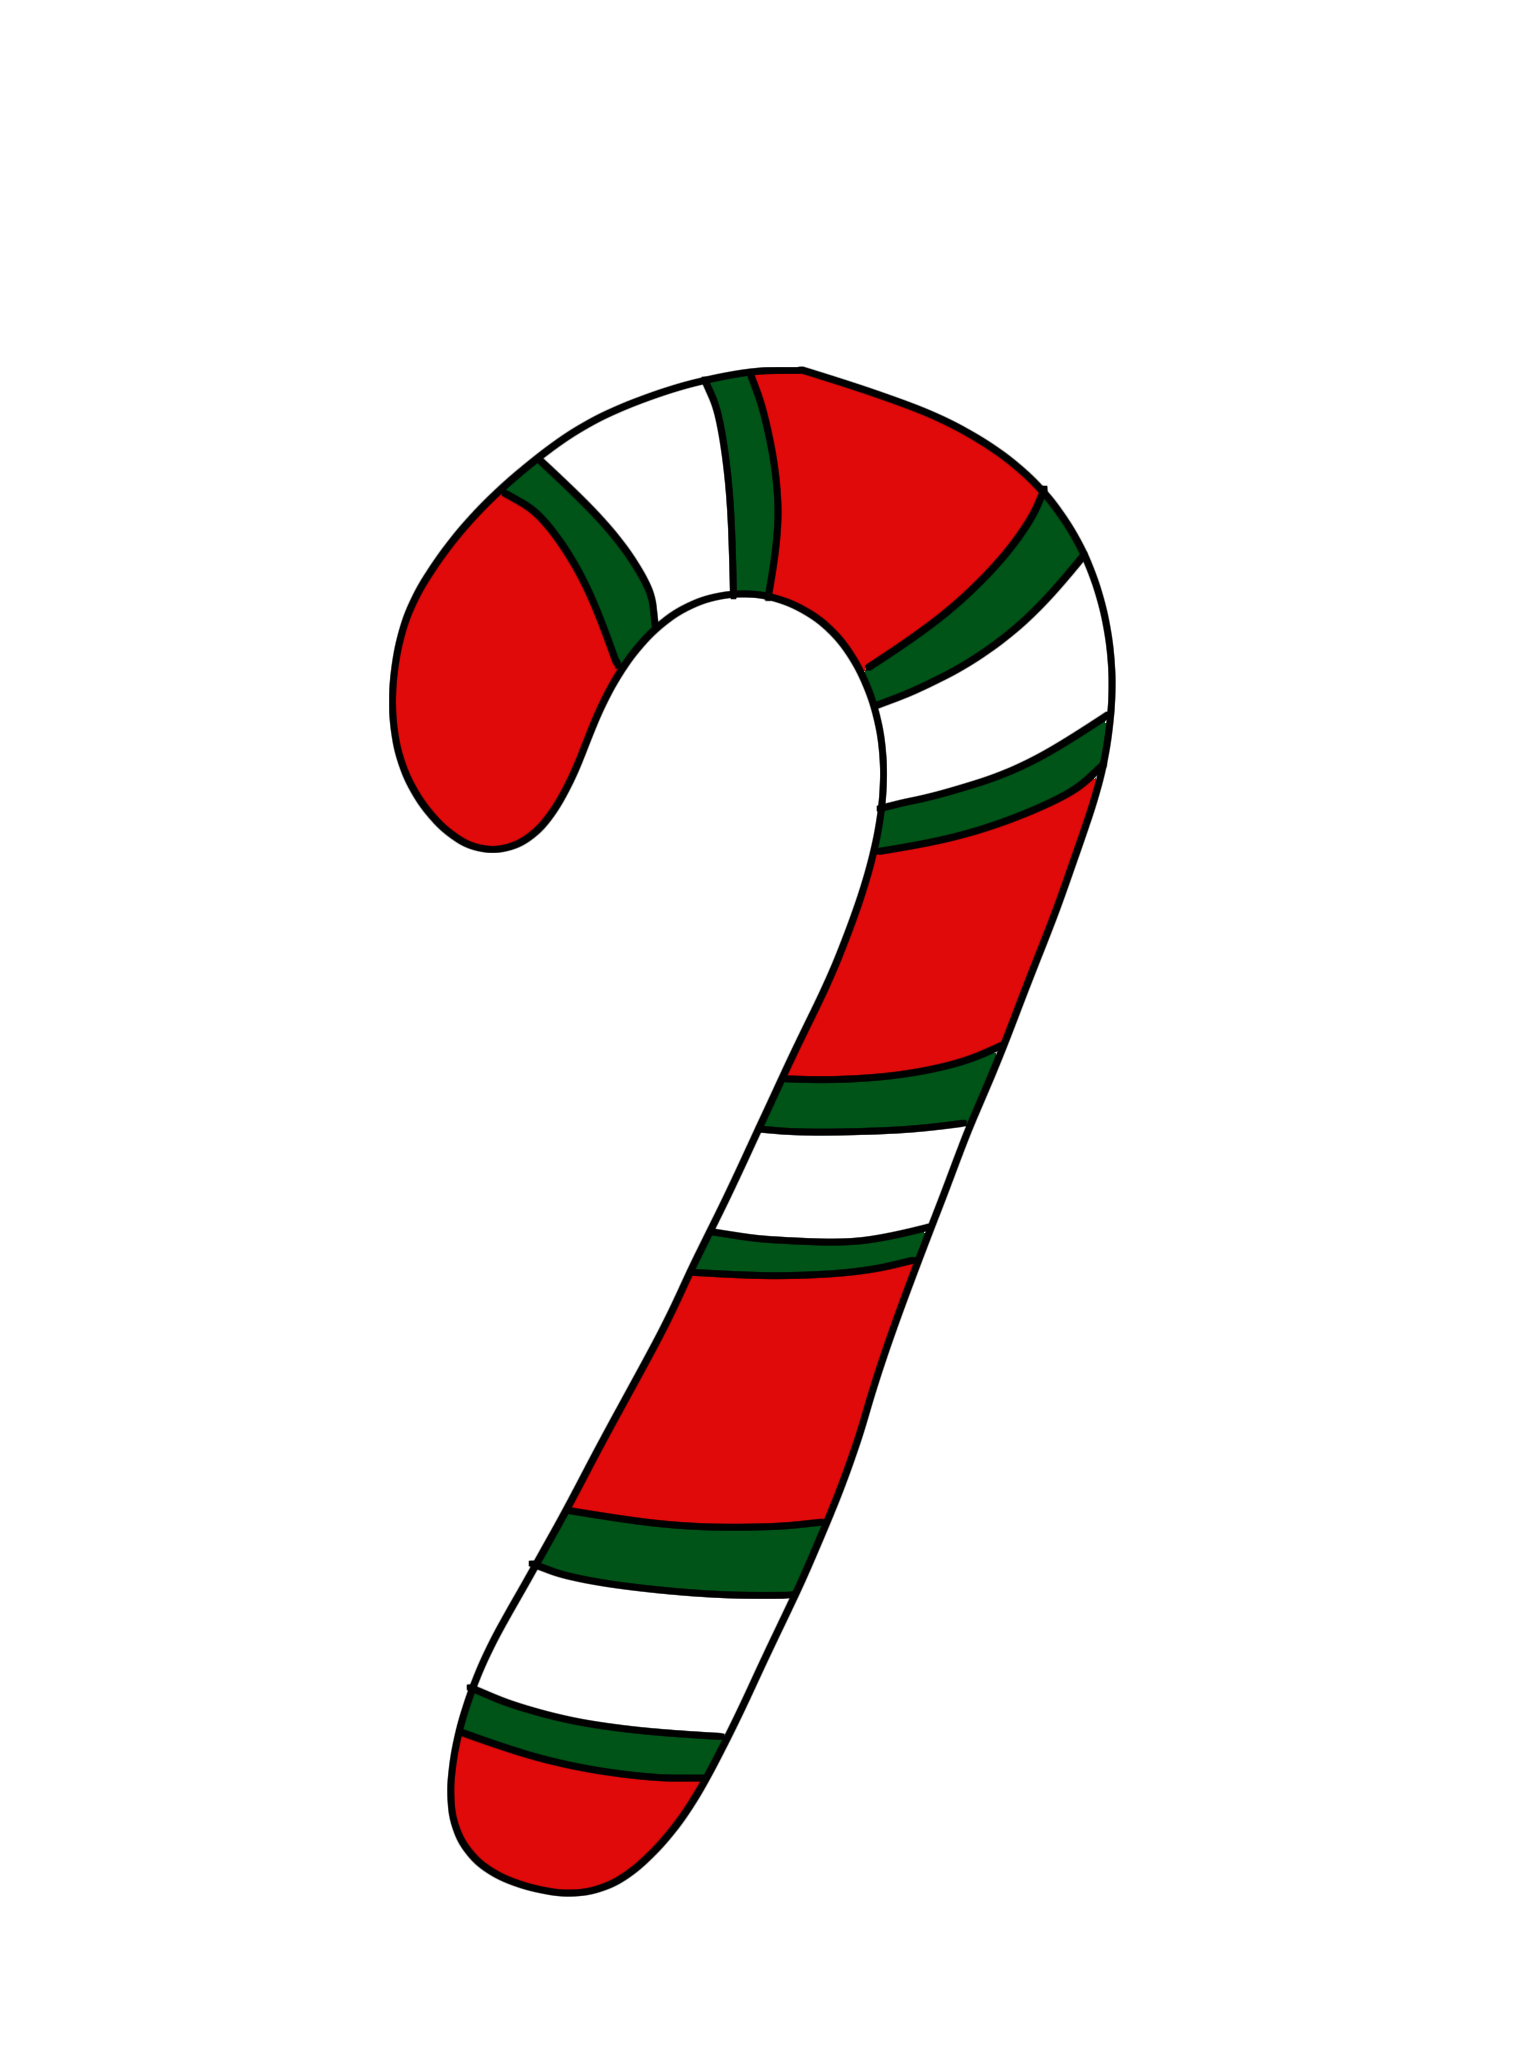 Pictures Of Candy Cane.